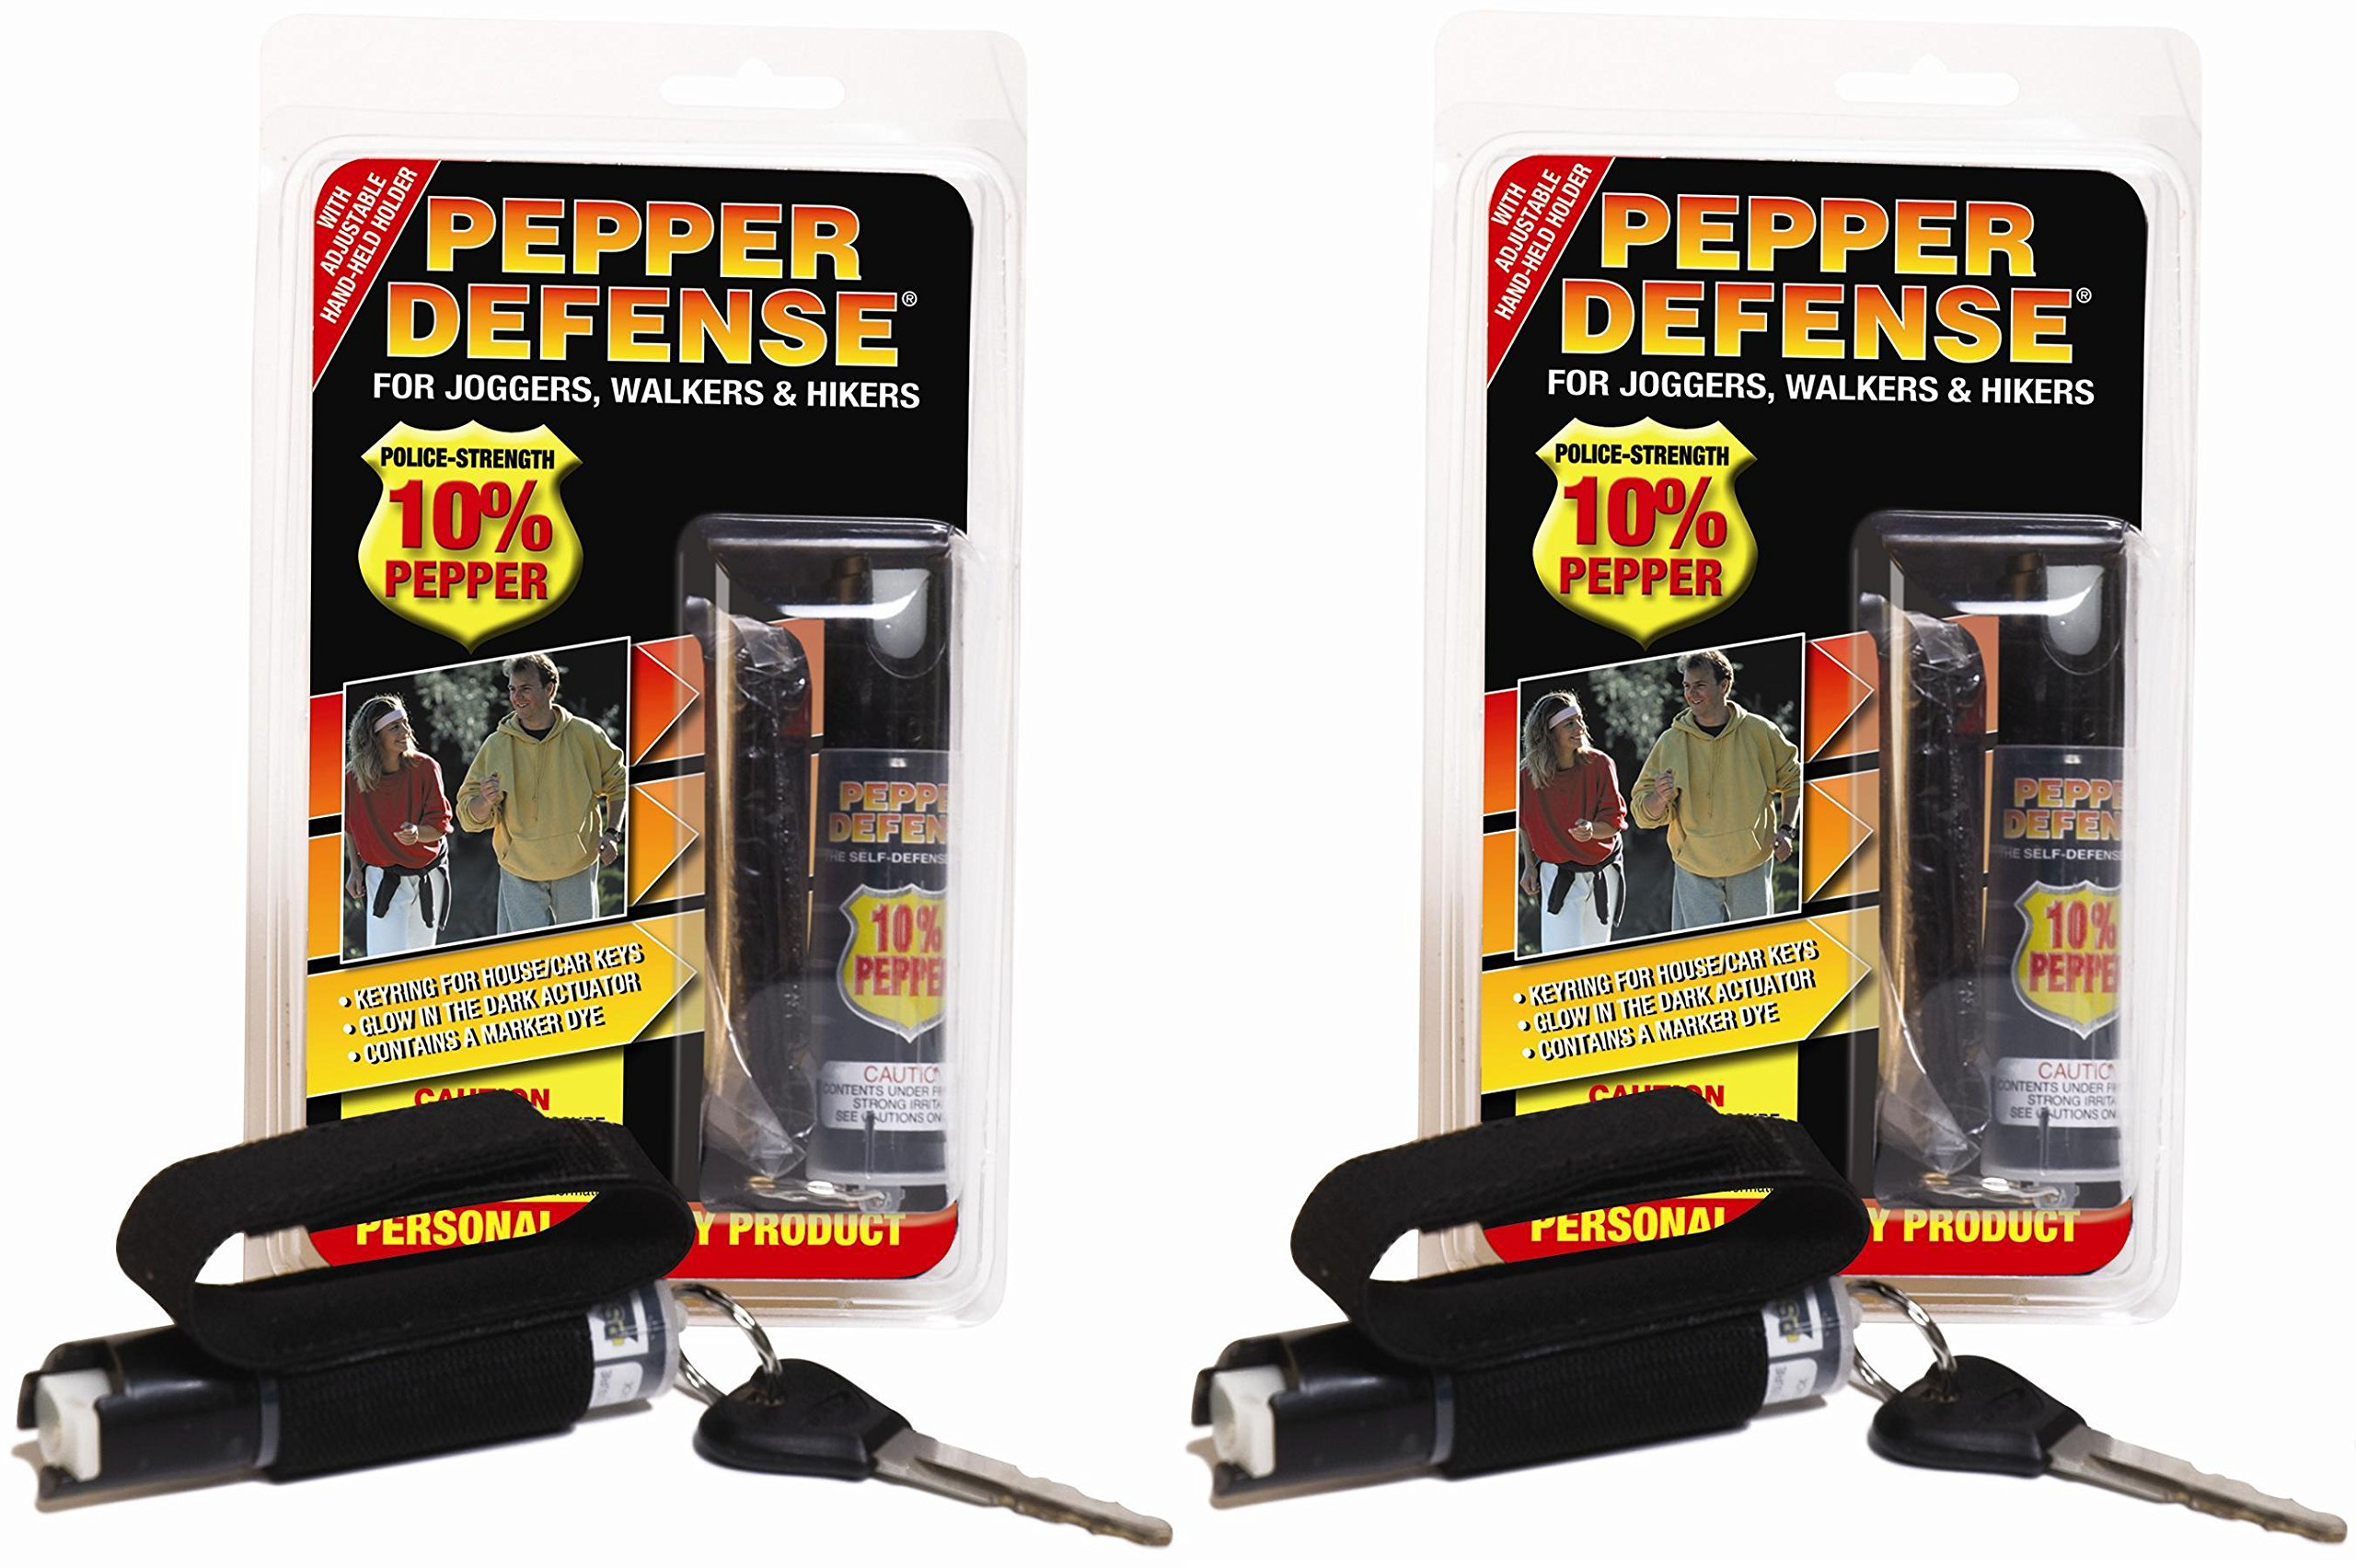 Pepper Defense (2 Pack) 10% OC Pepper Spray w/ Hand Strap for Jogging, Running, Walking, Hiking - Max Strength Police Formula - Emergency Self Defense Non Lethal Weapon for Safety and Protection by Pepper Defense (Image #1)